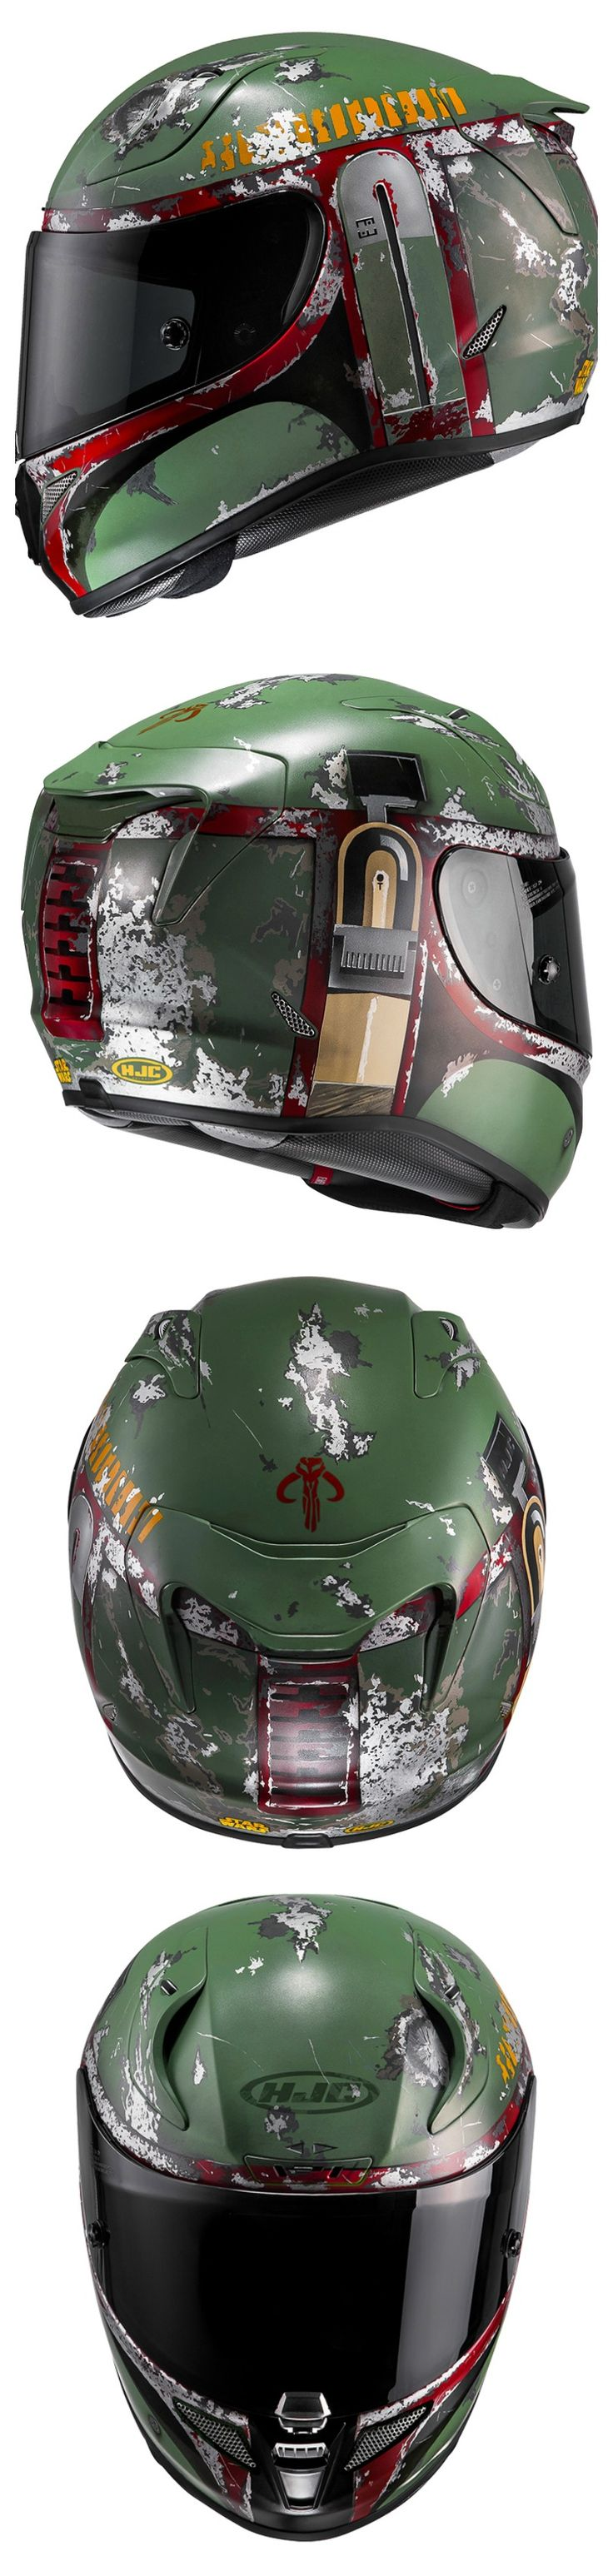 HJC Official Bobba Fett RHPA11 Helmet www.mad4bikesuk.co.uk #mad4bikesuk